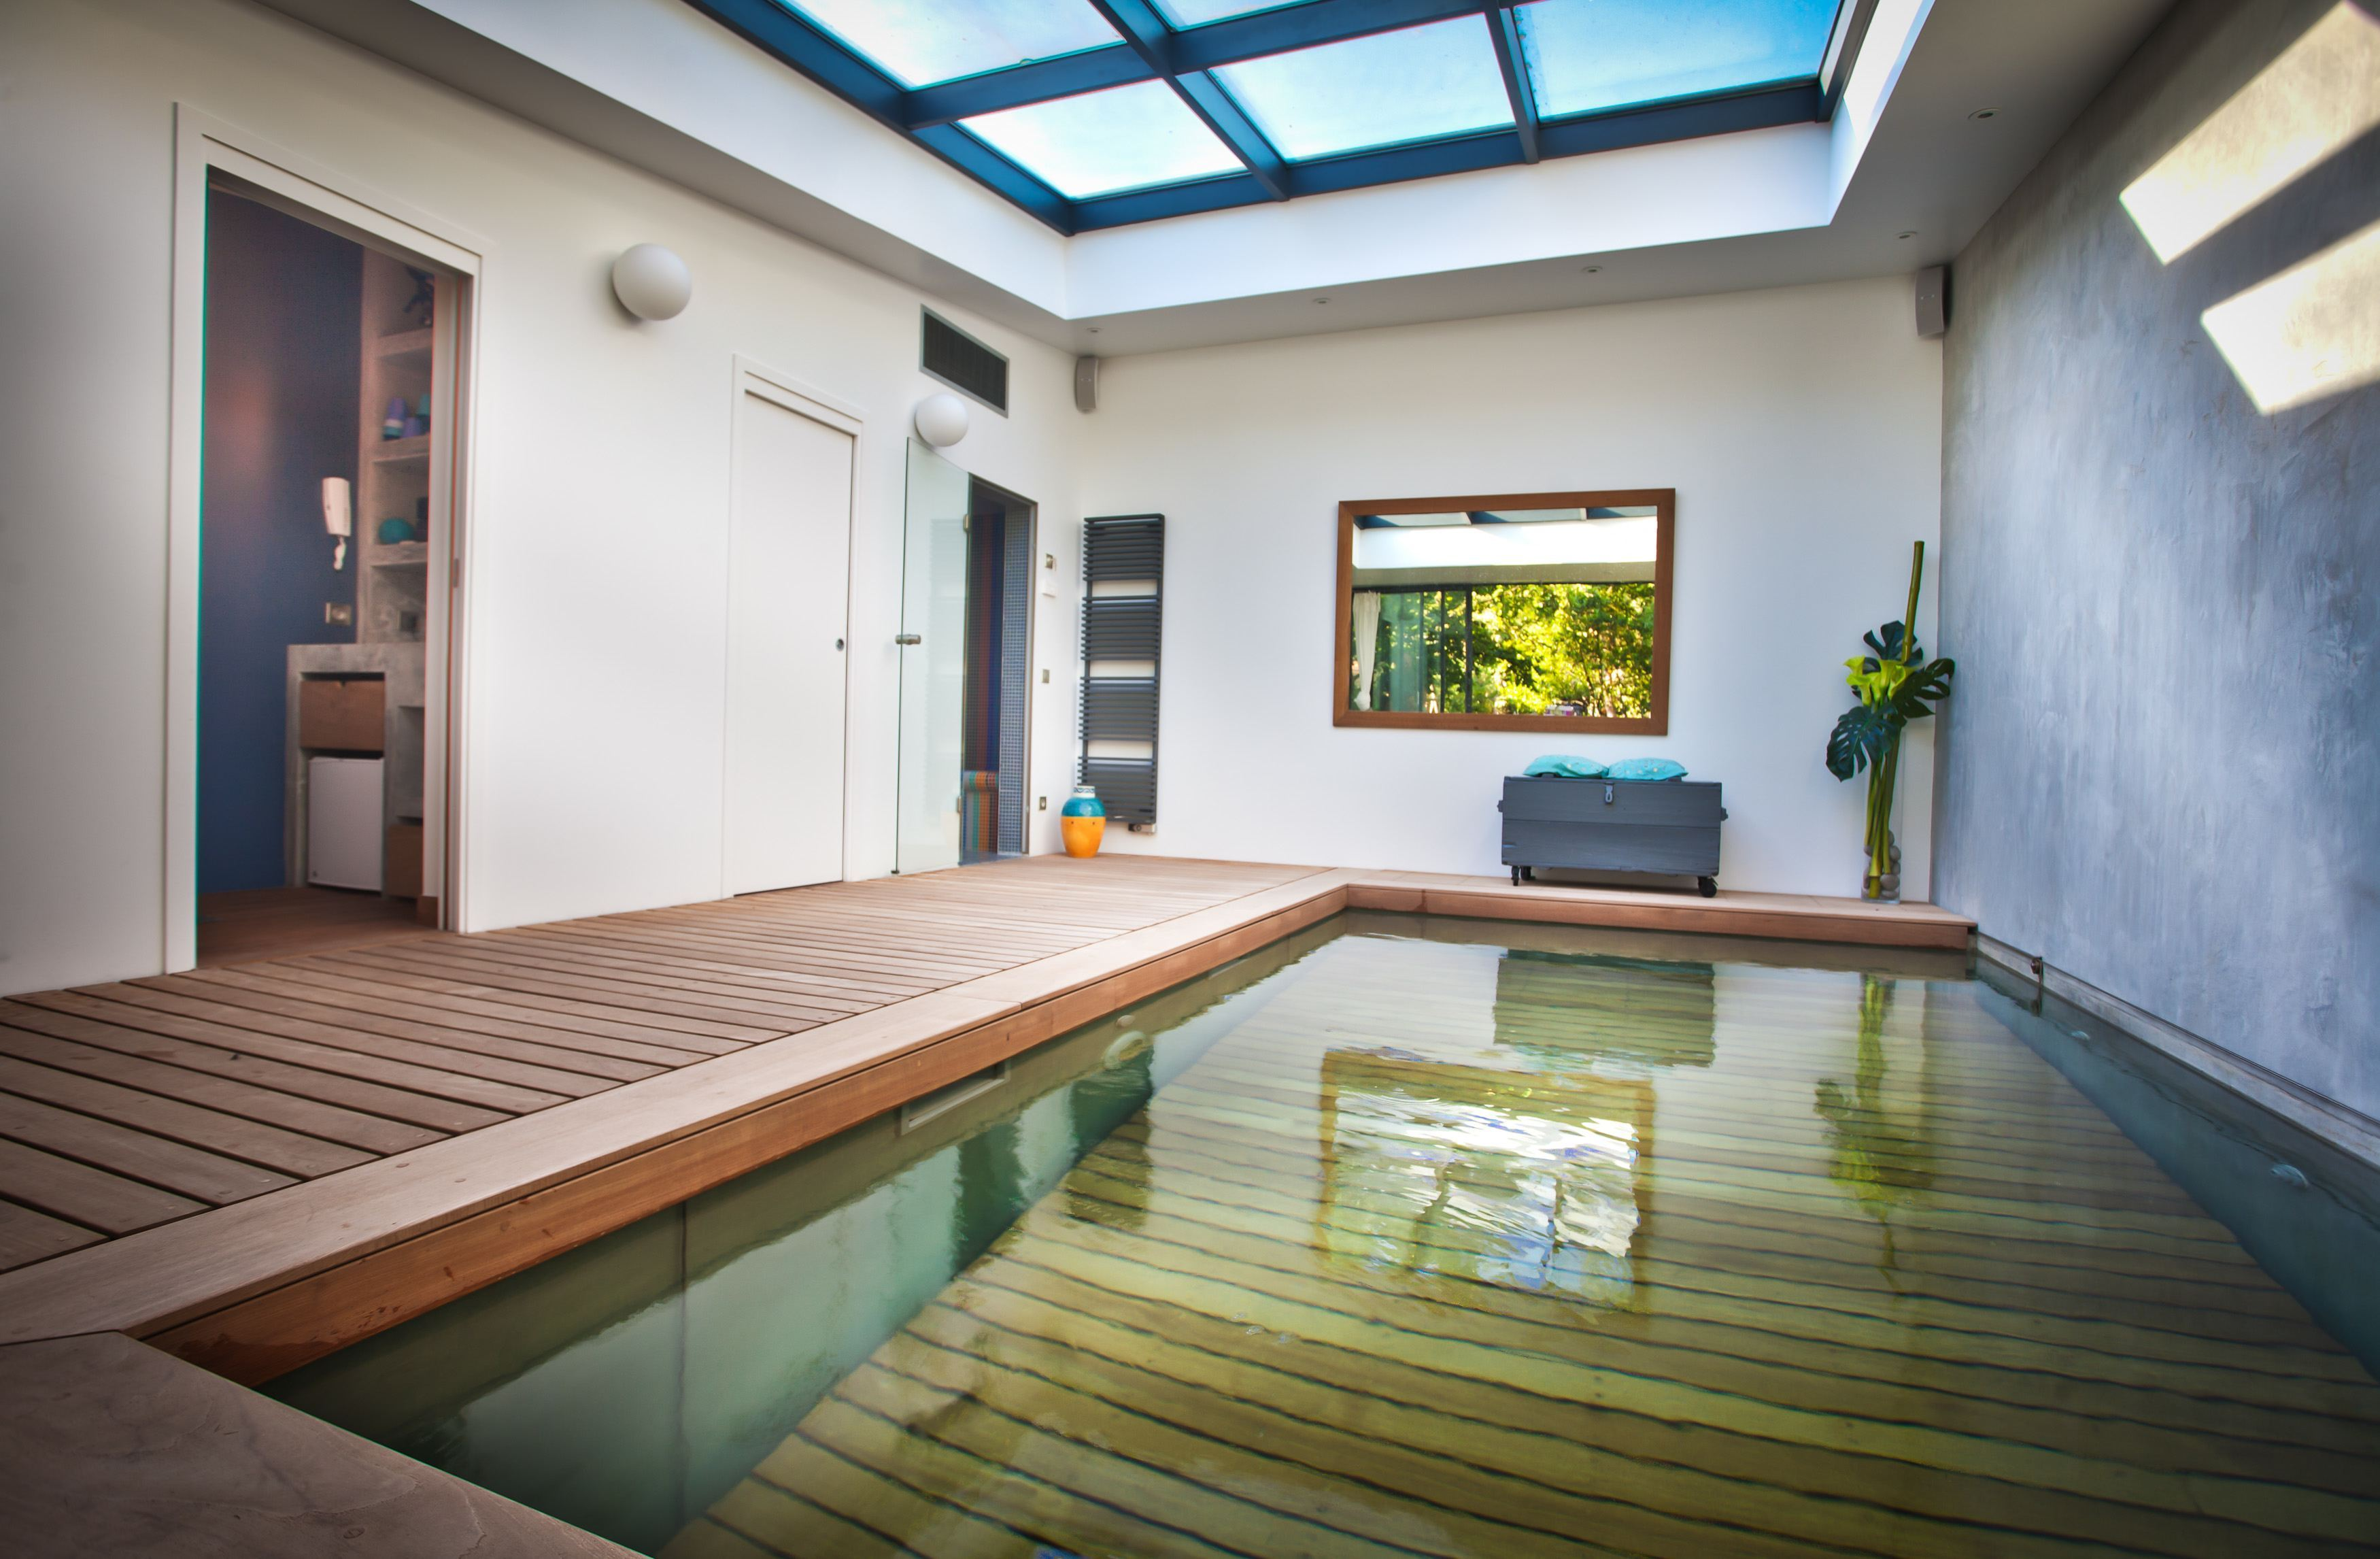 Photos cette piscine couverte donne envie de s 39 installer for Petite piscine interieure